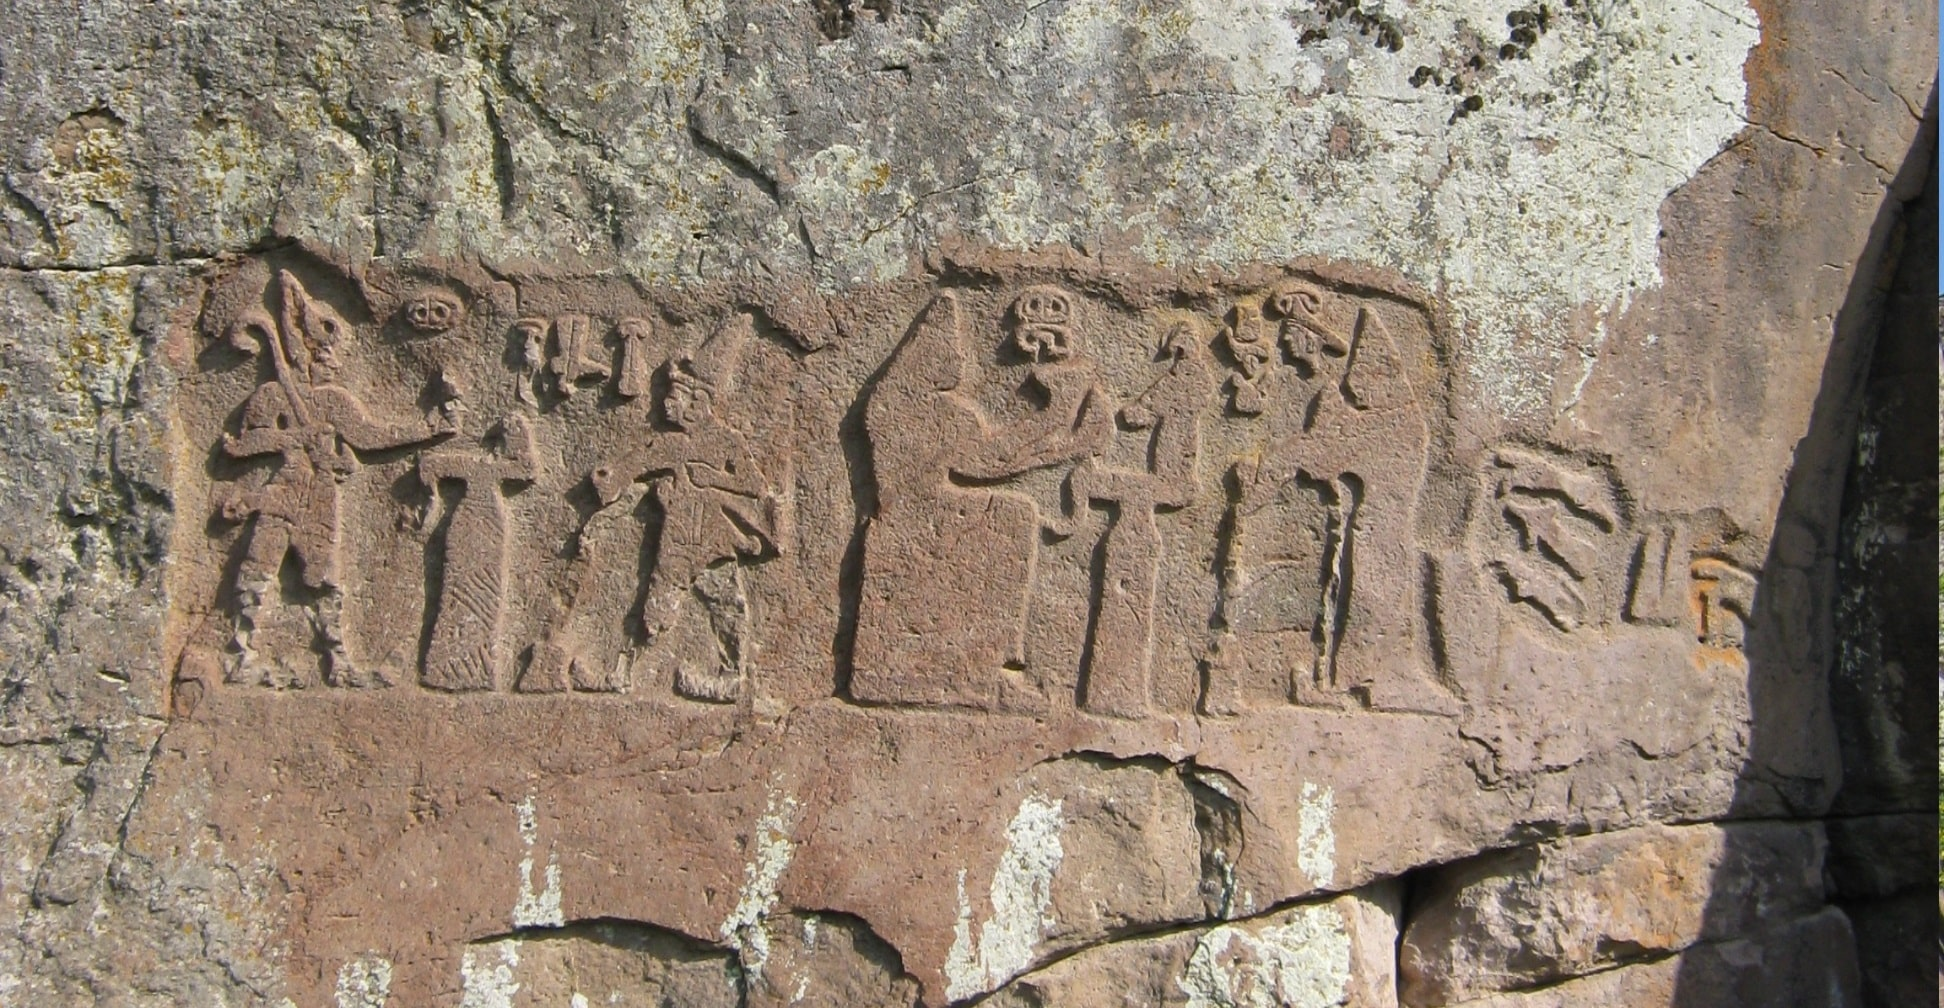 Hattuşili and her wife Puduhepa (Relief found in Fraktin)